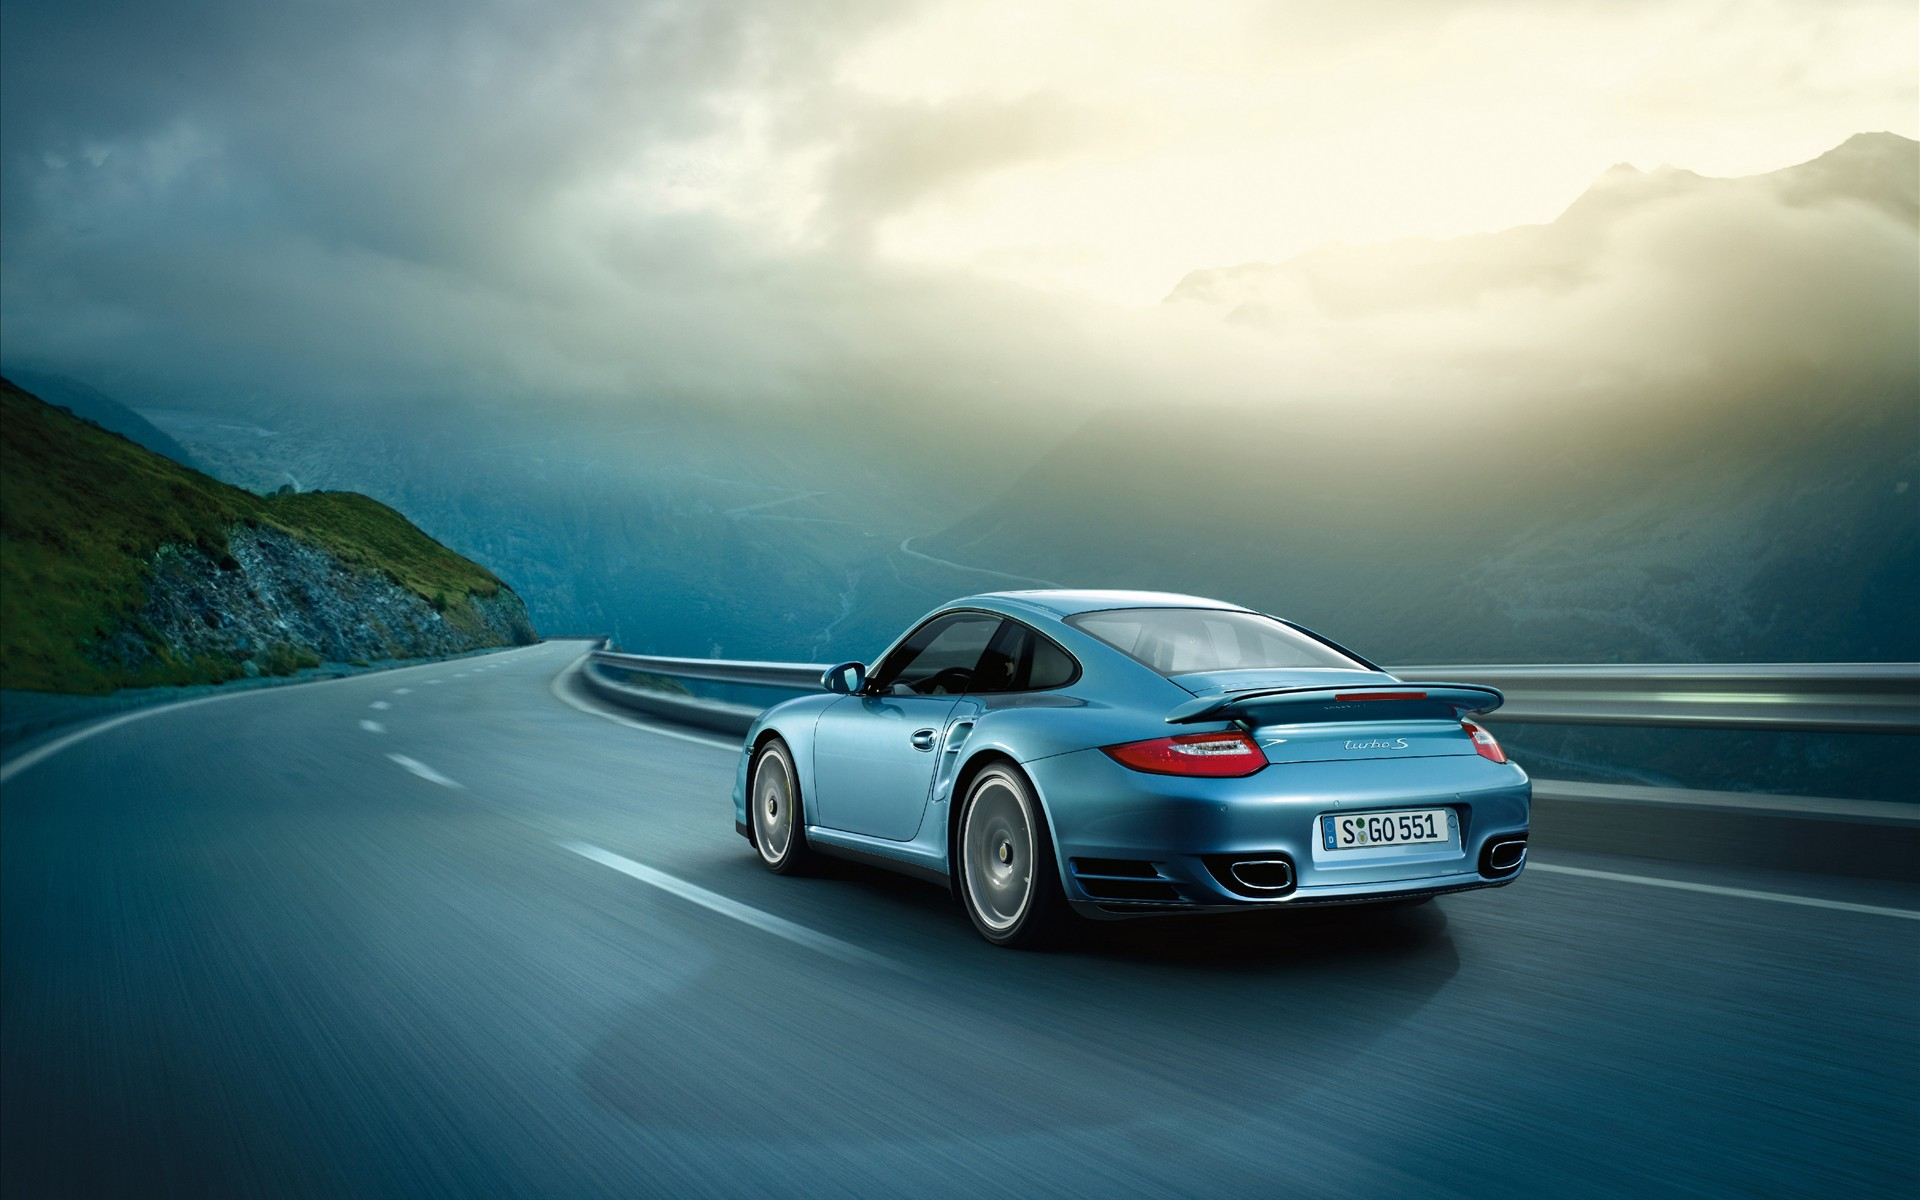 2011 Porsche 911 Turbo S 2 169.38 Kb